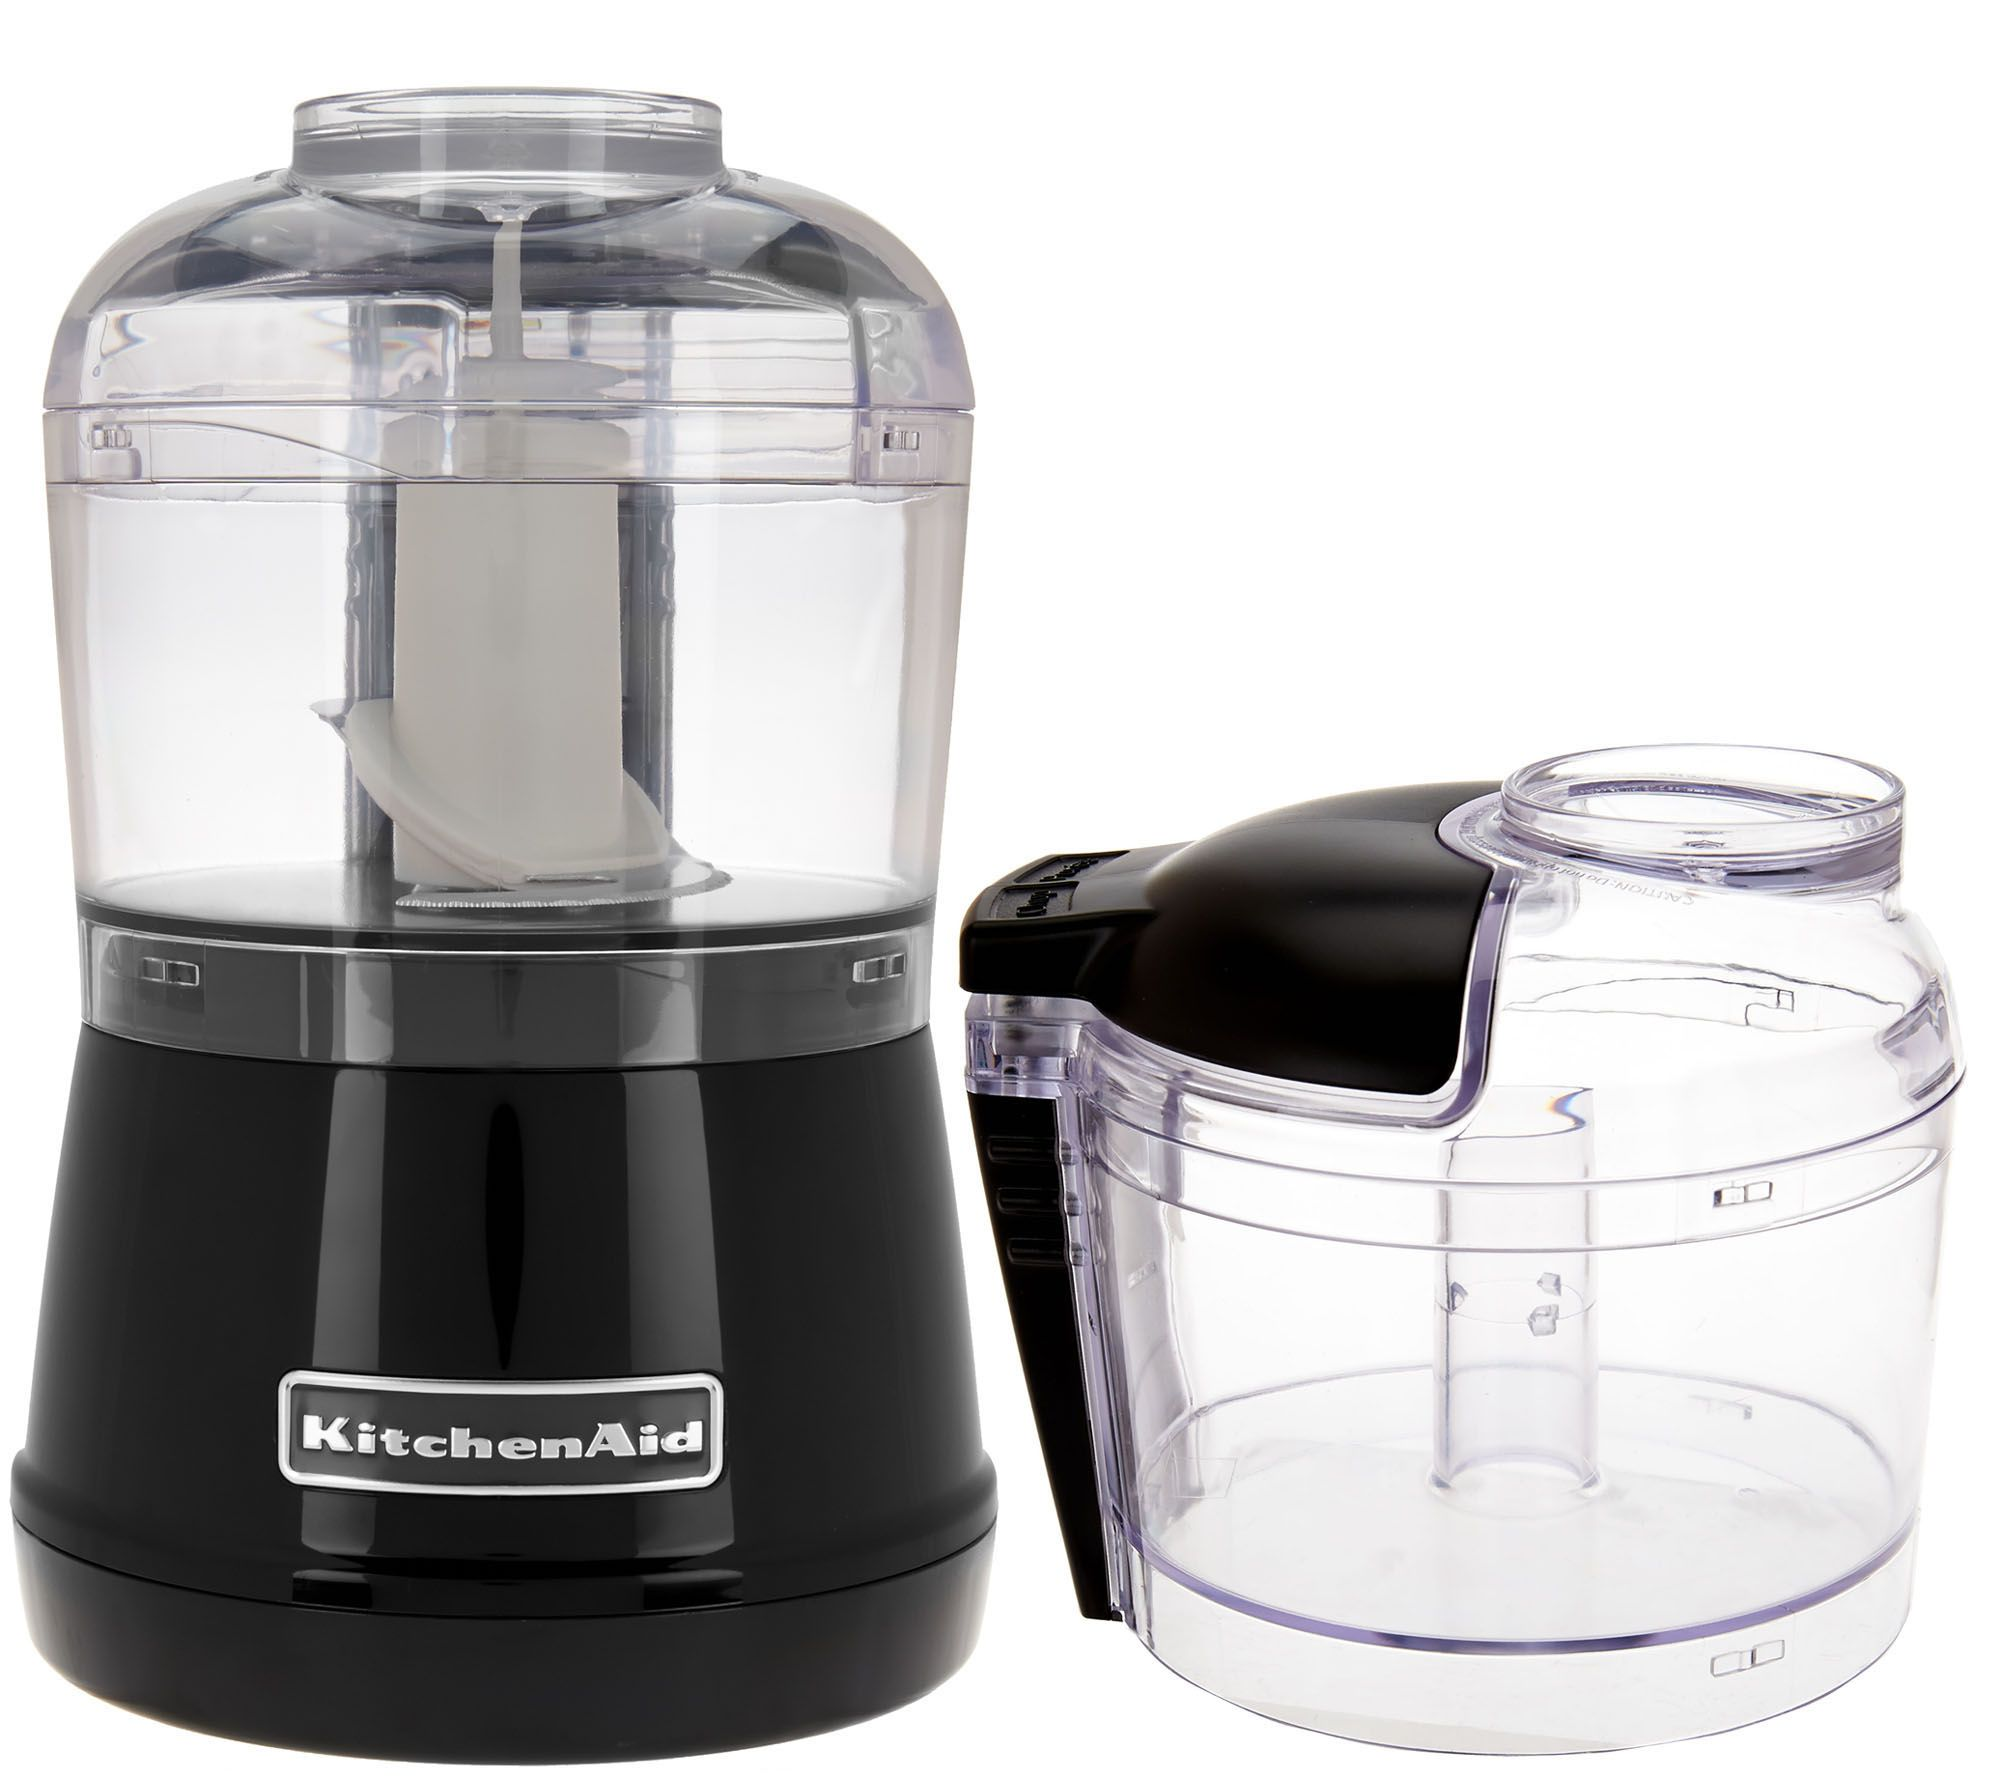 Kitchenaid Vegetable Chopper kitchenaid 3.5 cup one-touch 2-speed chopper with extra bowl